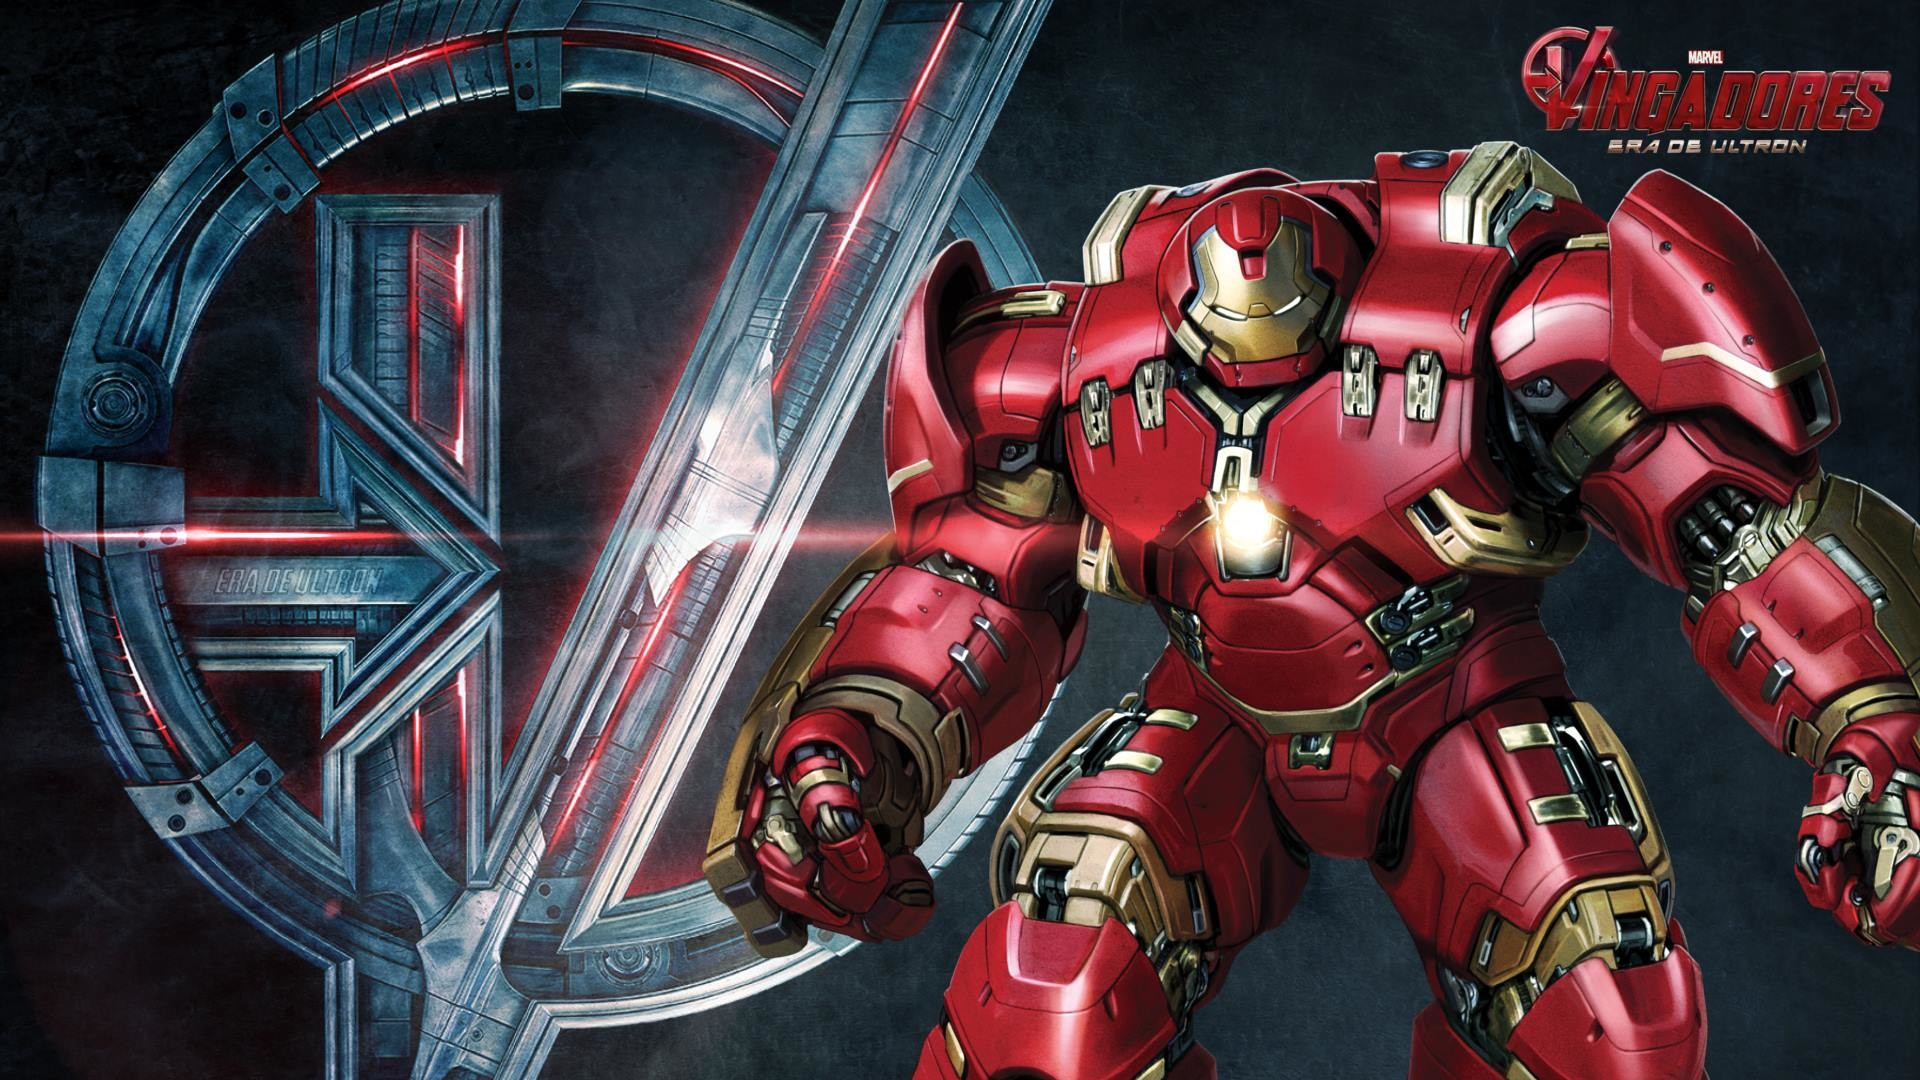 Of AVENGERS: AGE OF ULTRON Get Stylish Promo Art Character Wallpapers .